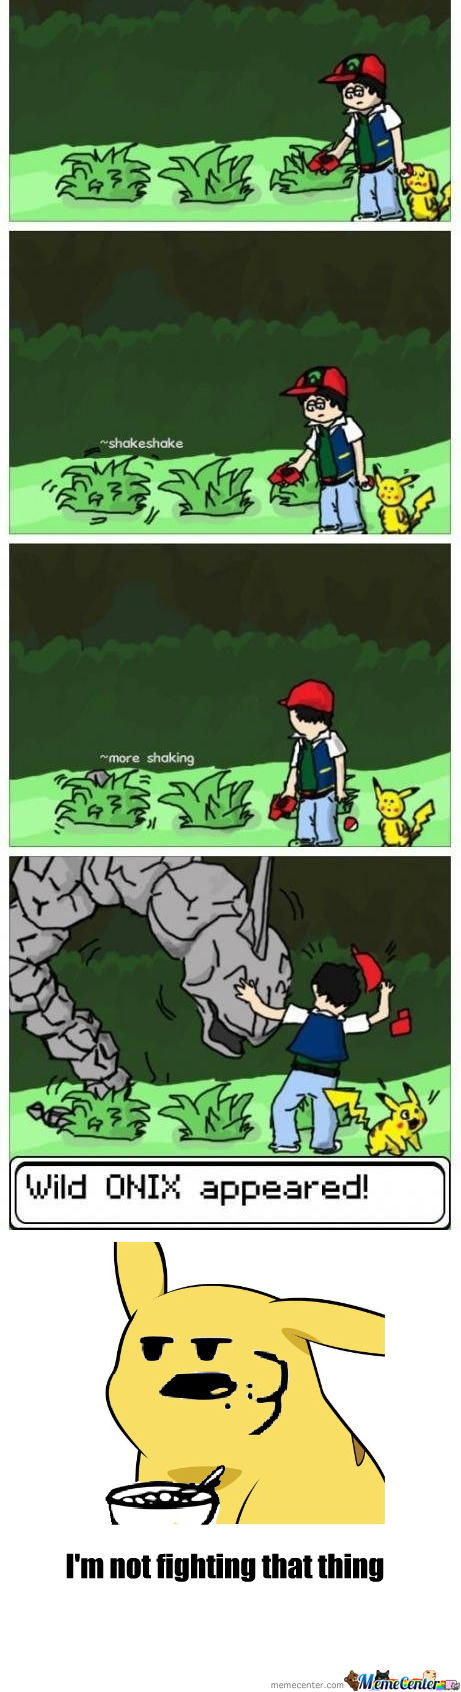 [RMX] Pokemon Logic.